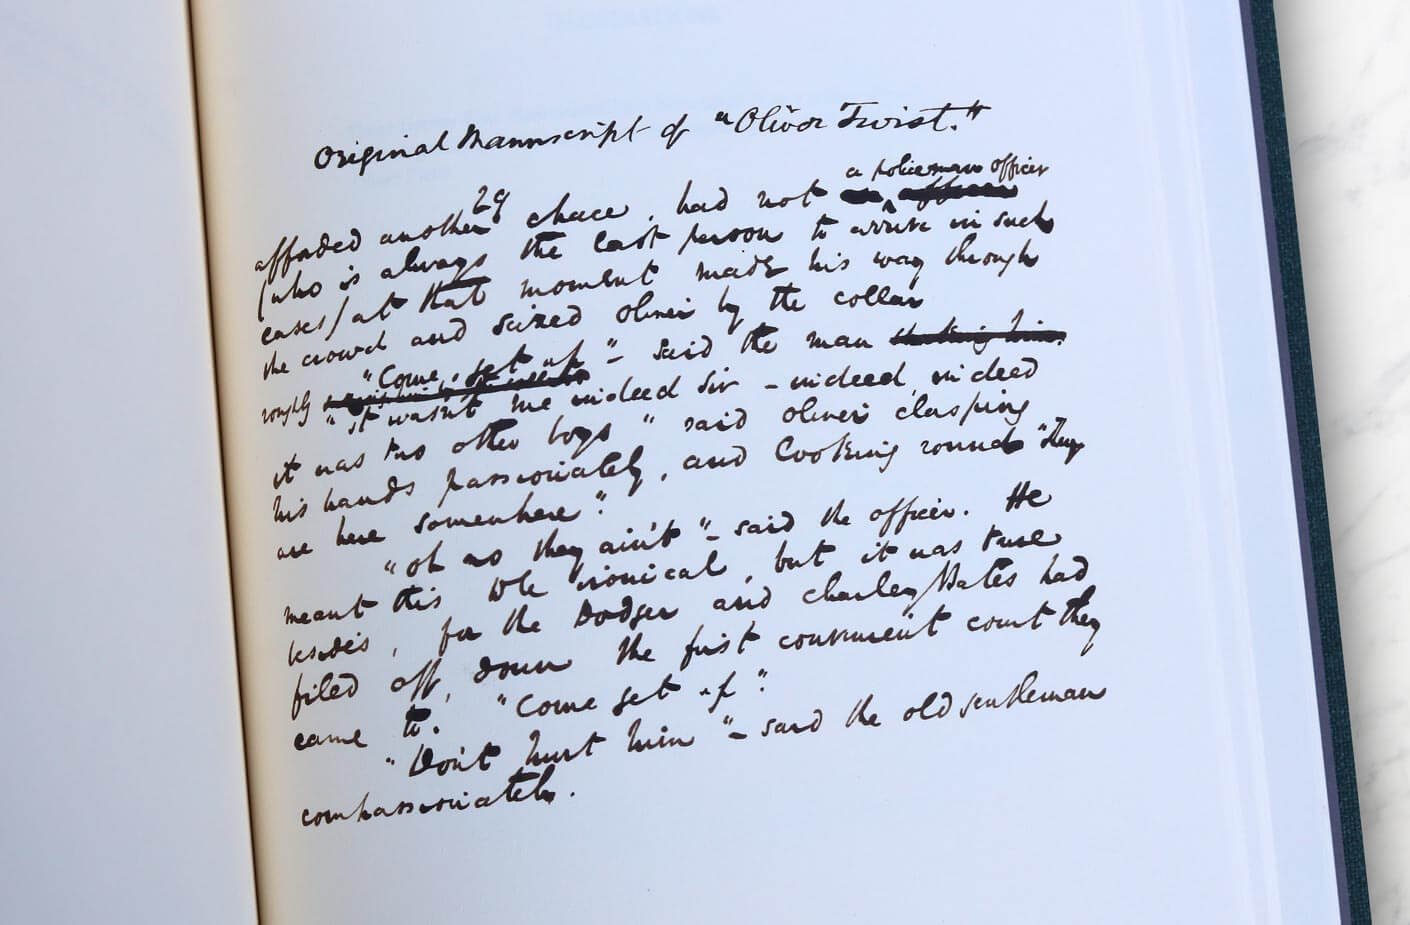 Oliver twist original manuscript, by Charles Dickens